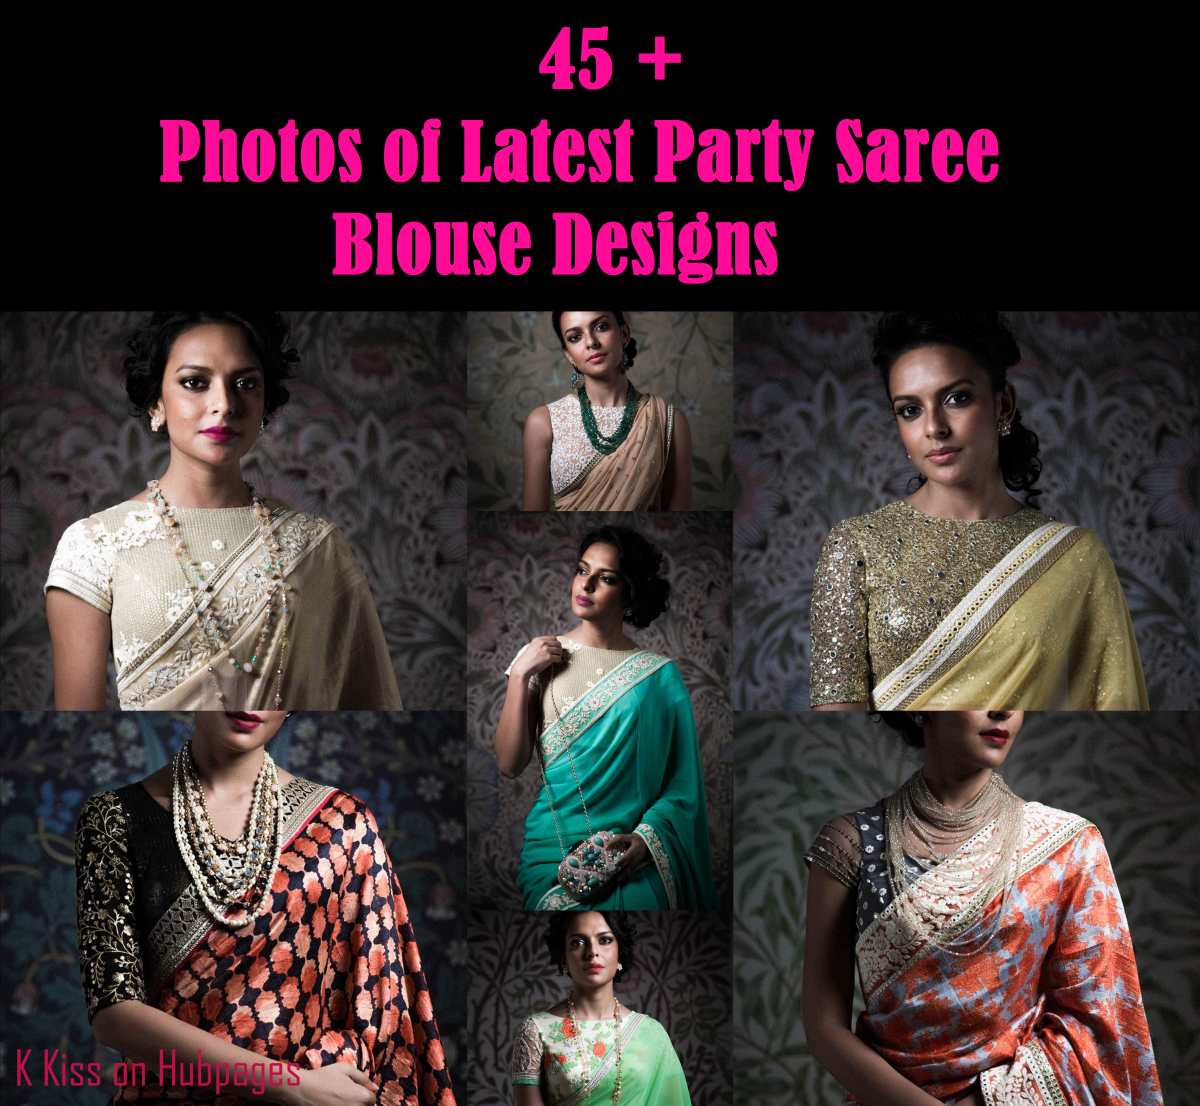 45+ photos of the Latest Party Saree Blouse Designs with lots of tips and tricks on looking fabulous